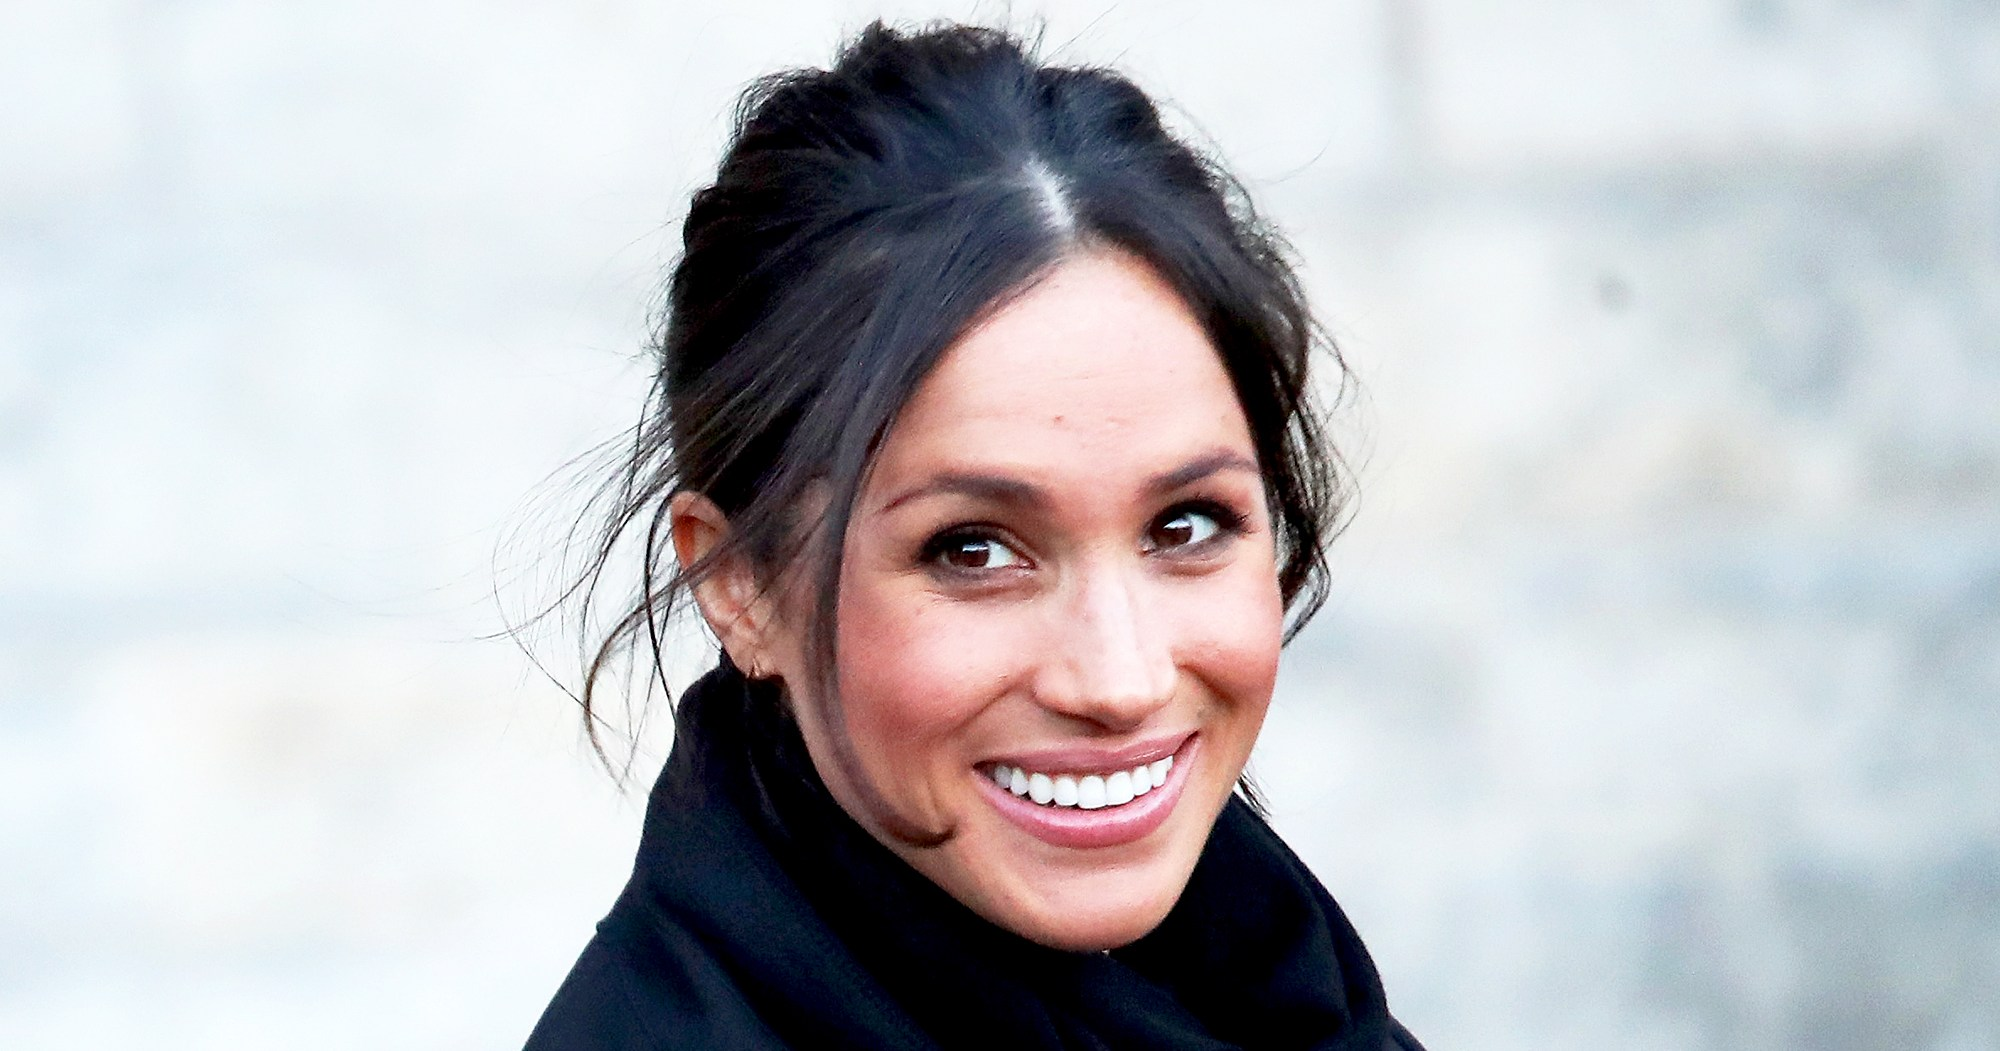 Meghan Markle To Give Speech At Wedding To Harry Break